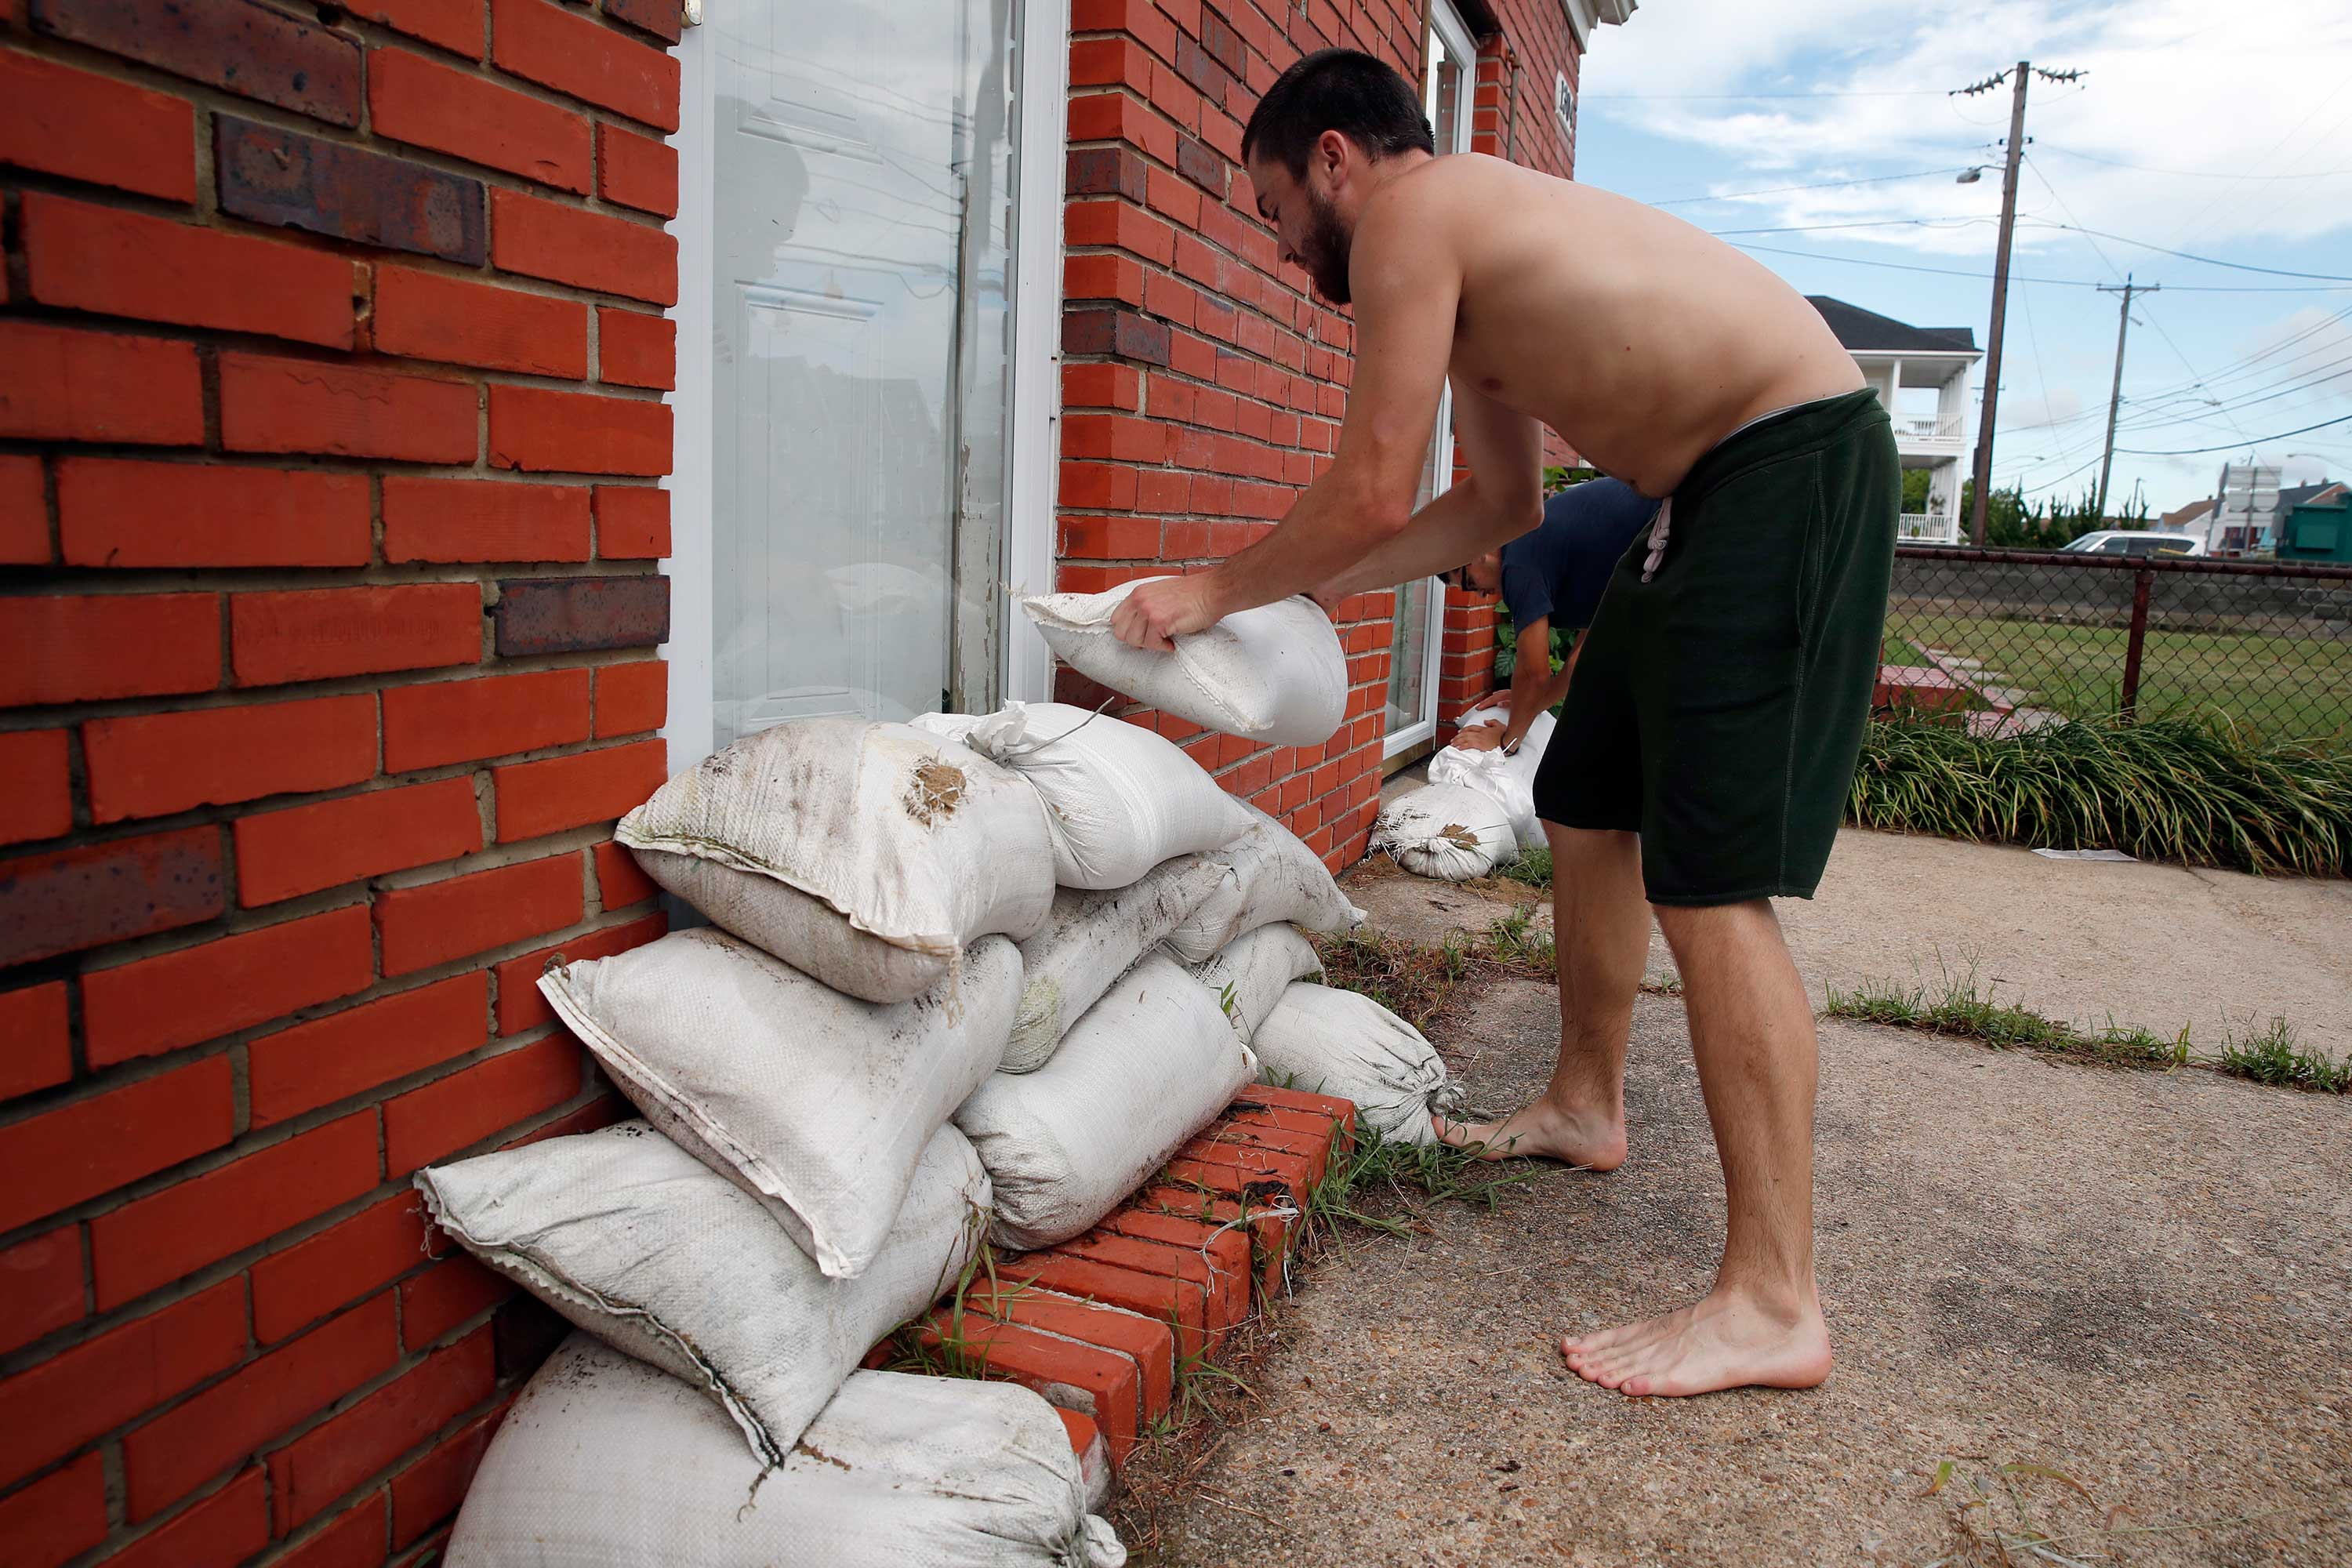 <div class='meta'><div class='origin-logo' data-origin='none'></div><span class='caption-text' data-credit='Alex Brandon/AP Photo'>Adam Bazemore places sandbags in the doorways, Tuesday, Sept. 11, 2018, in the Willoughby Spit area of Norfolk, Va., as he makes preparations for Hurricane Florence.</span></div>